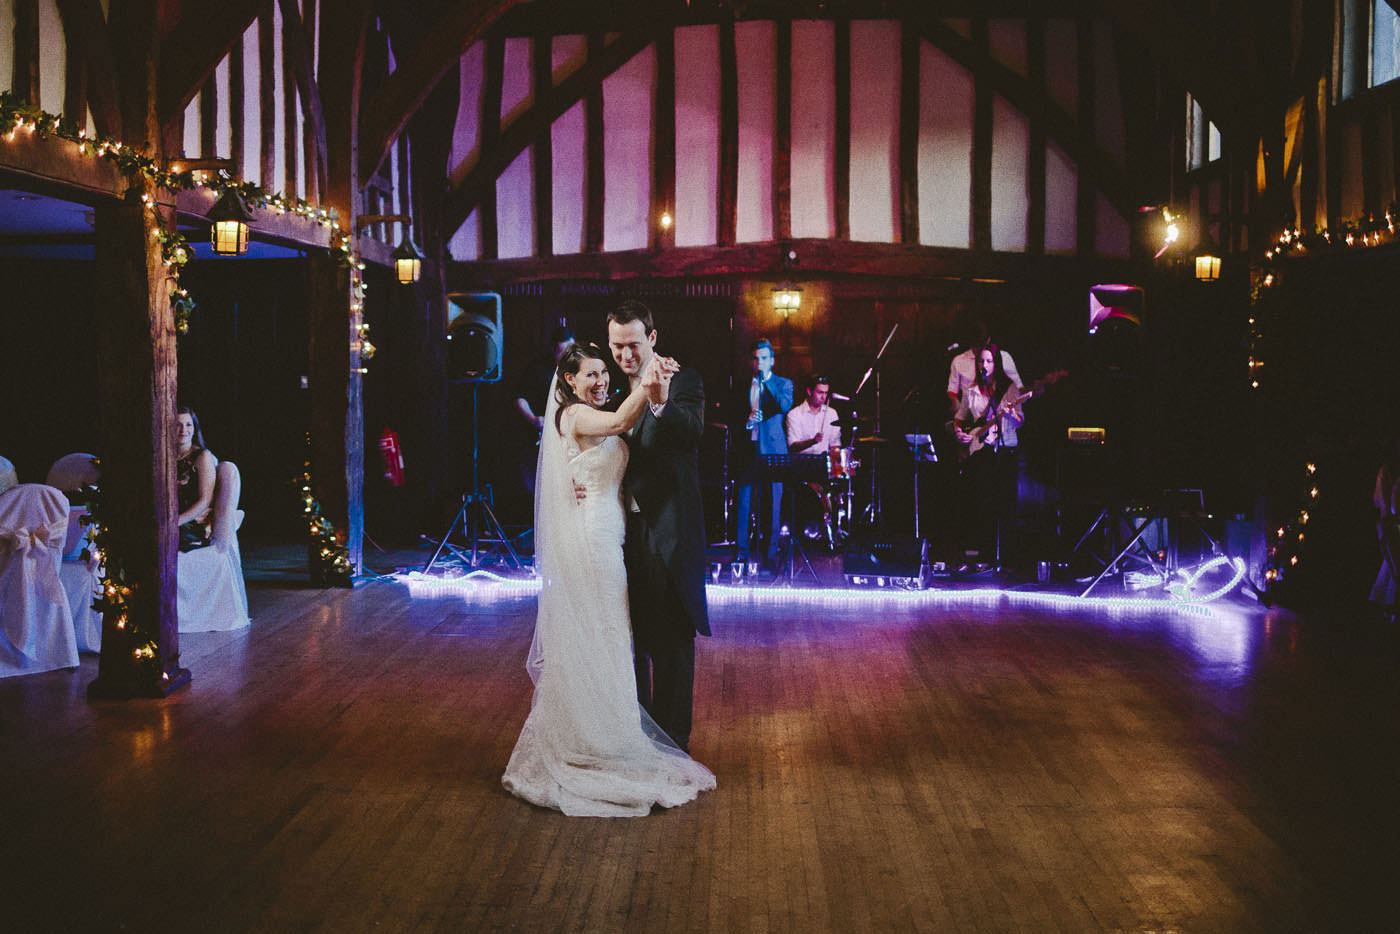 LewisAnna Great Fosters Wedding Photographer 0116 1